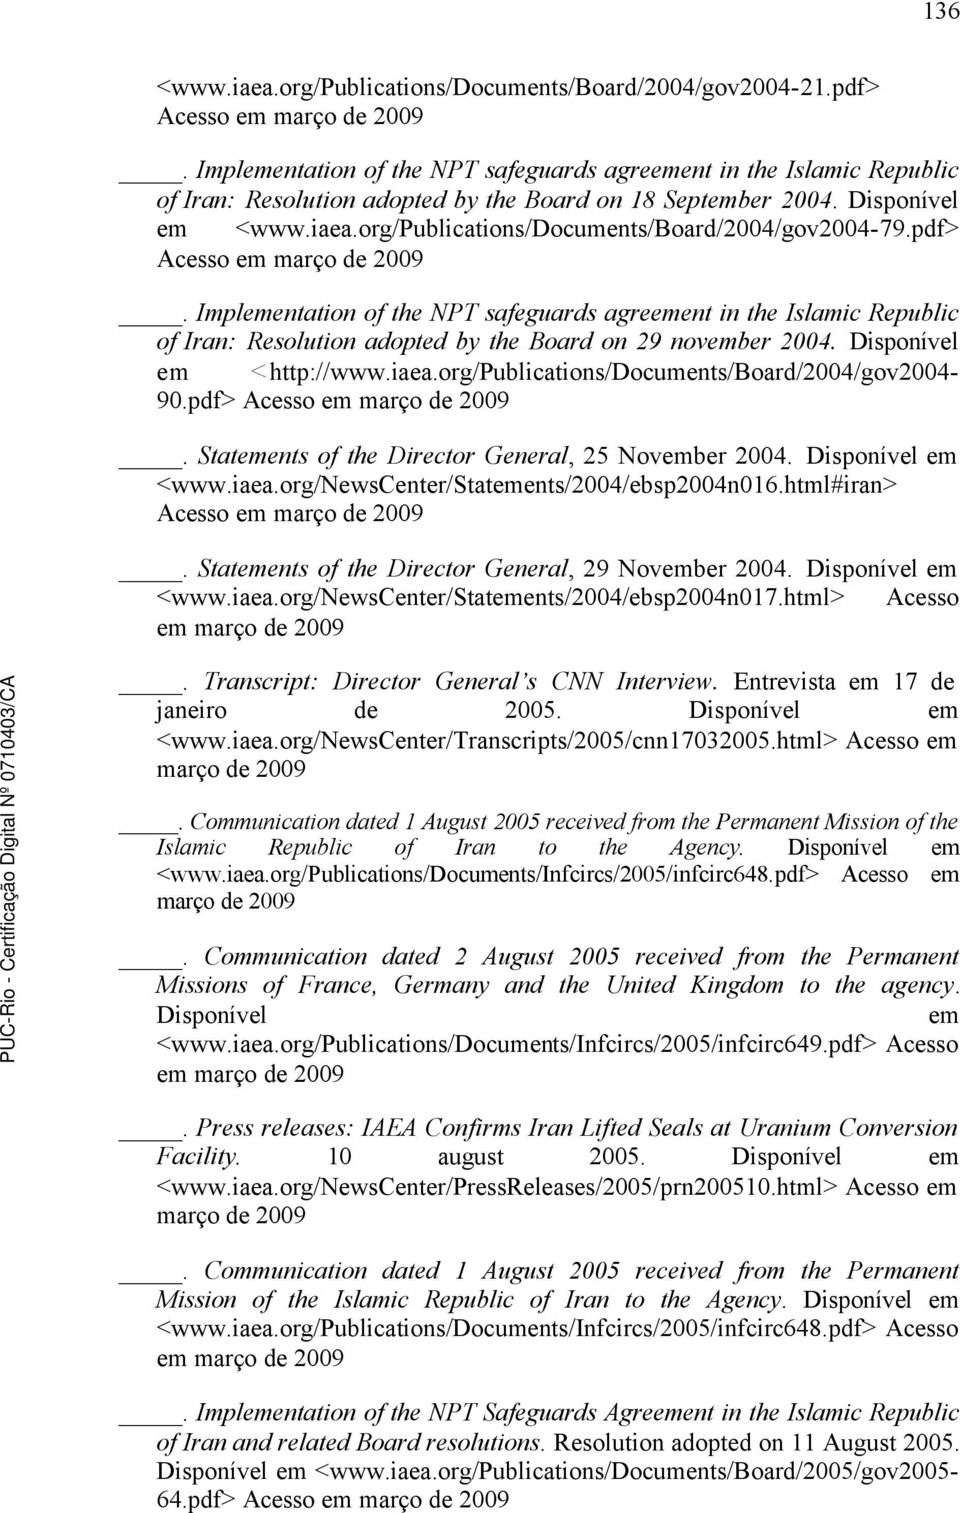 org/publications/documents/board/2004/gov2004-79.pdf>. Implementation of the NPT safeguards agreement in the Islamic Republic of Iran: Resolution adopted by the Board on 29 november 2004.